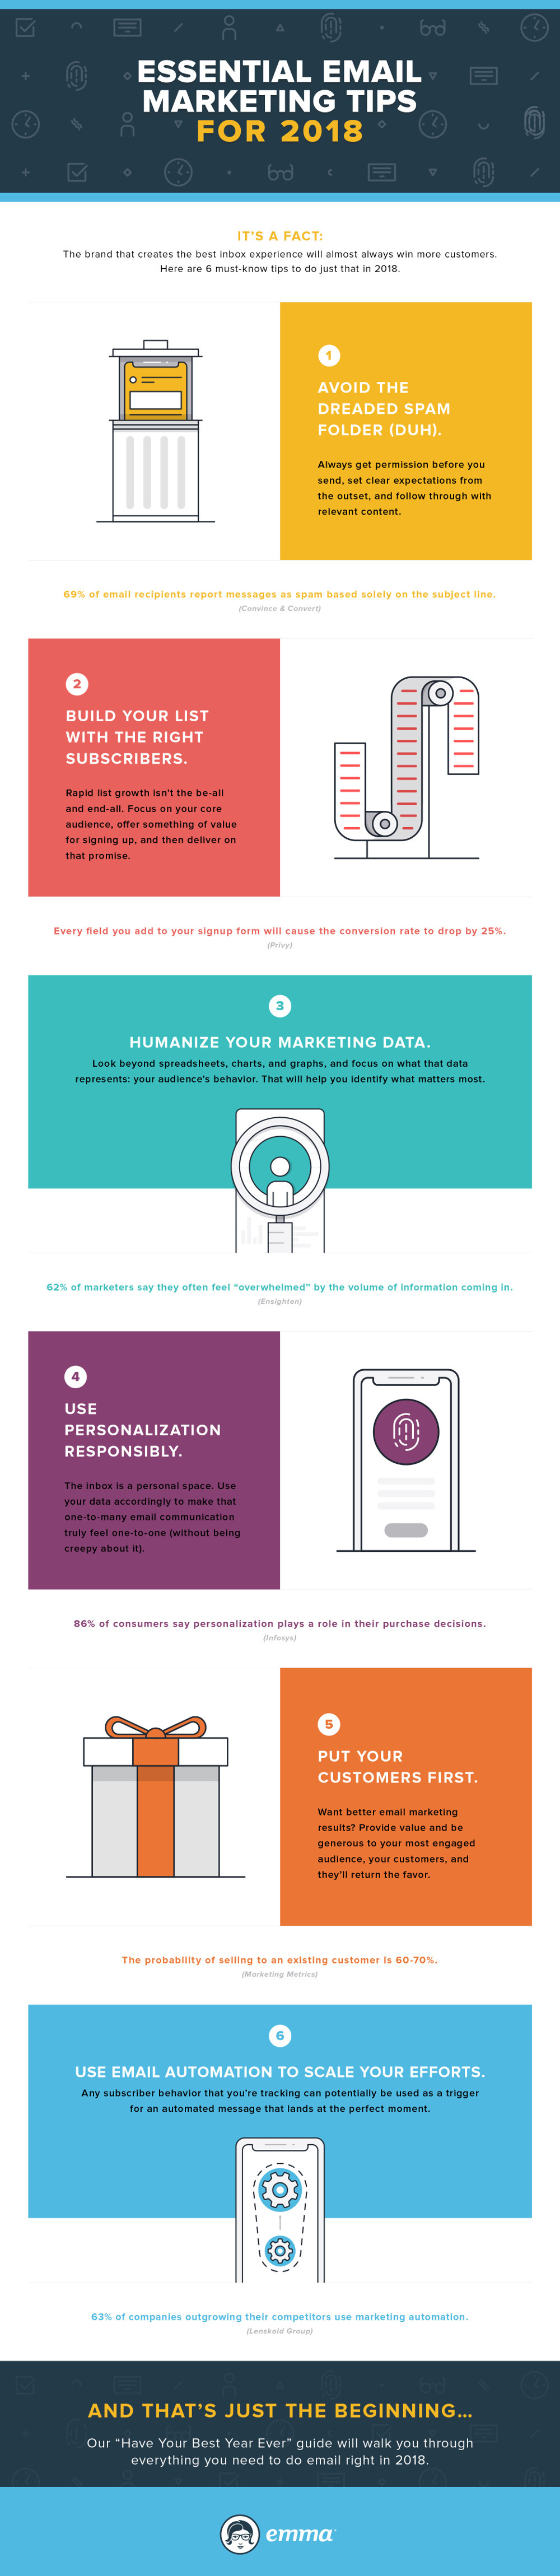 Tips for Email Marketing Success in 2018 | Infographic